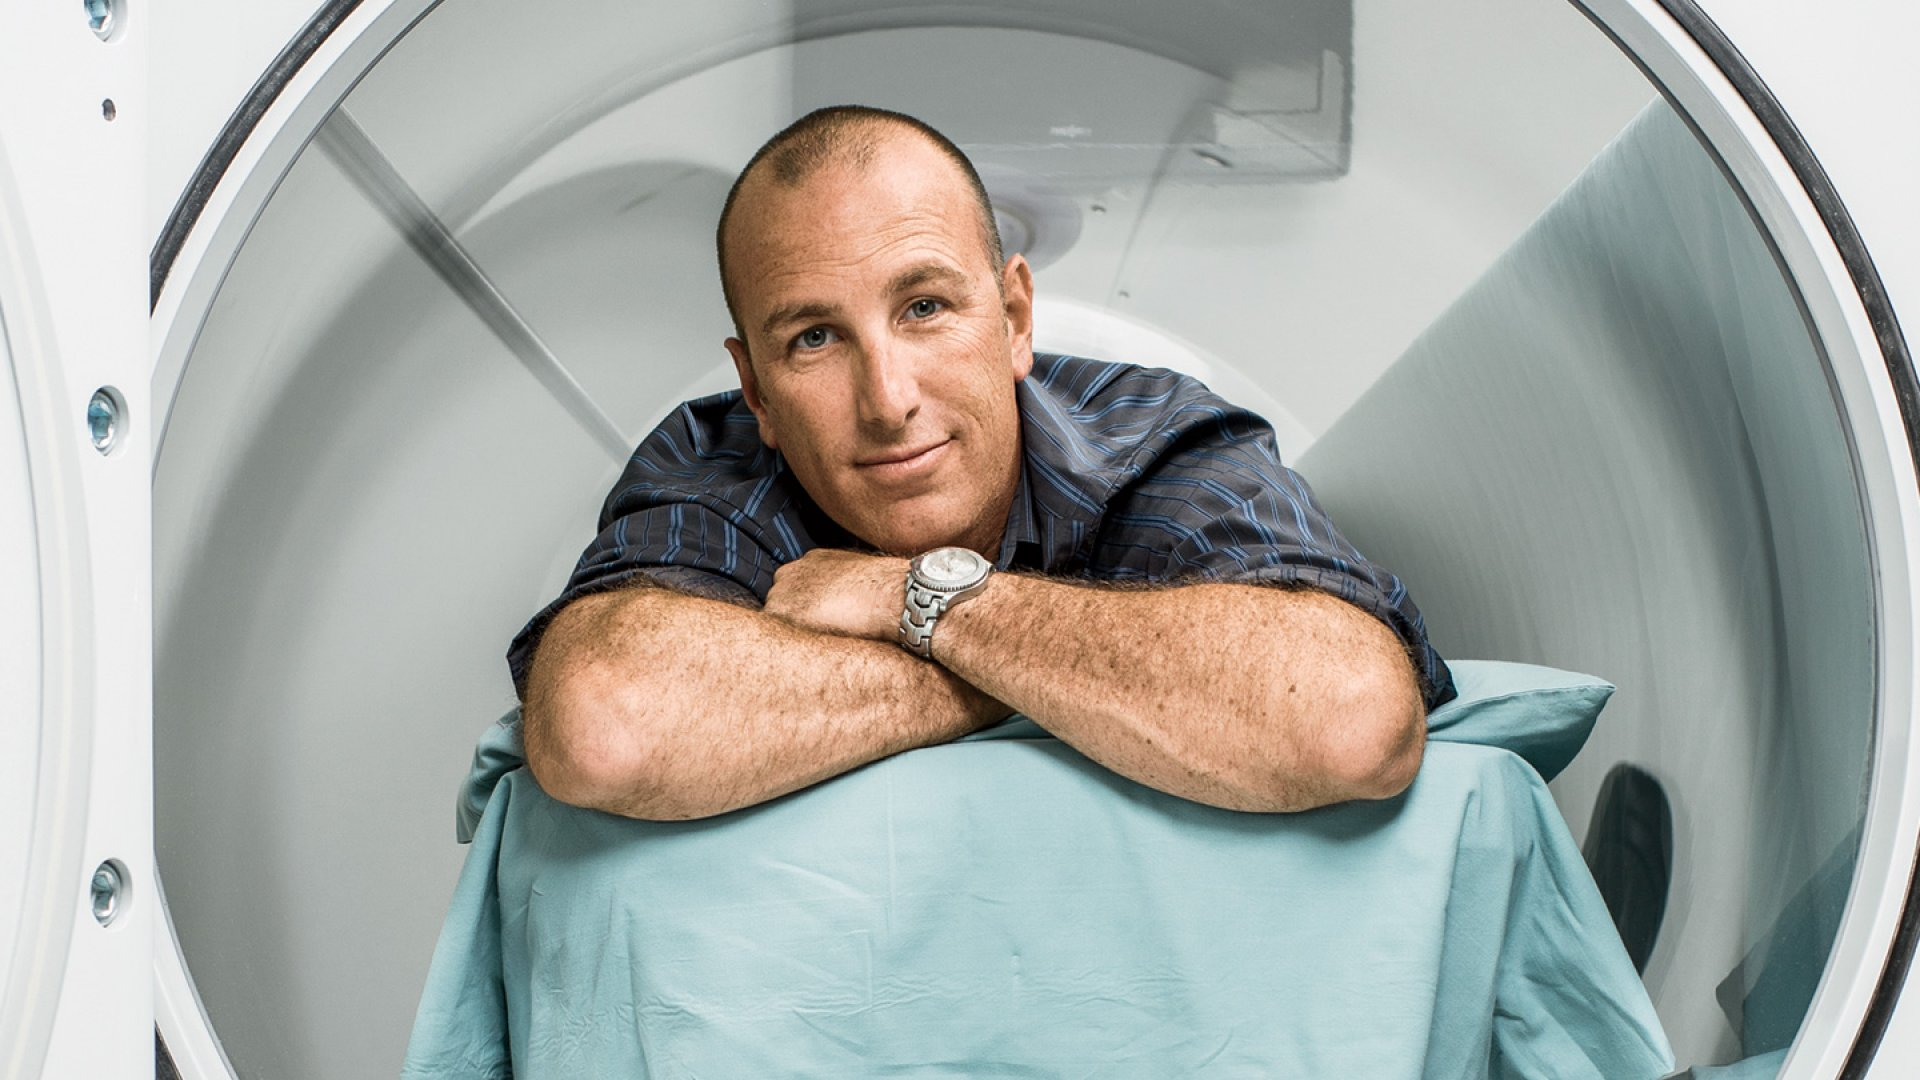 <b>Pressure Cooker</b> Mike Comer in a hyperbaric chamber, which is used to help heal wounds.